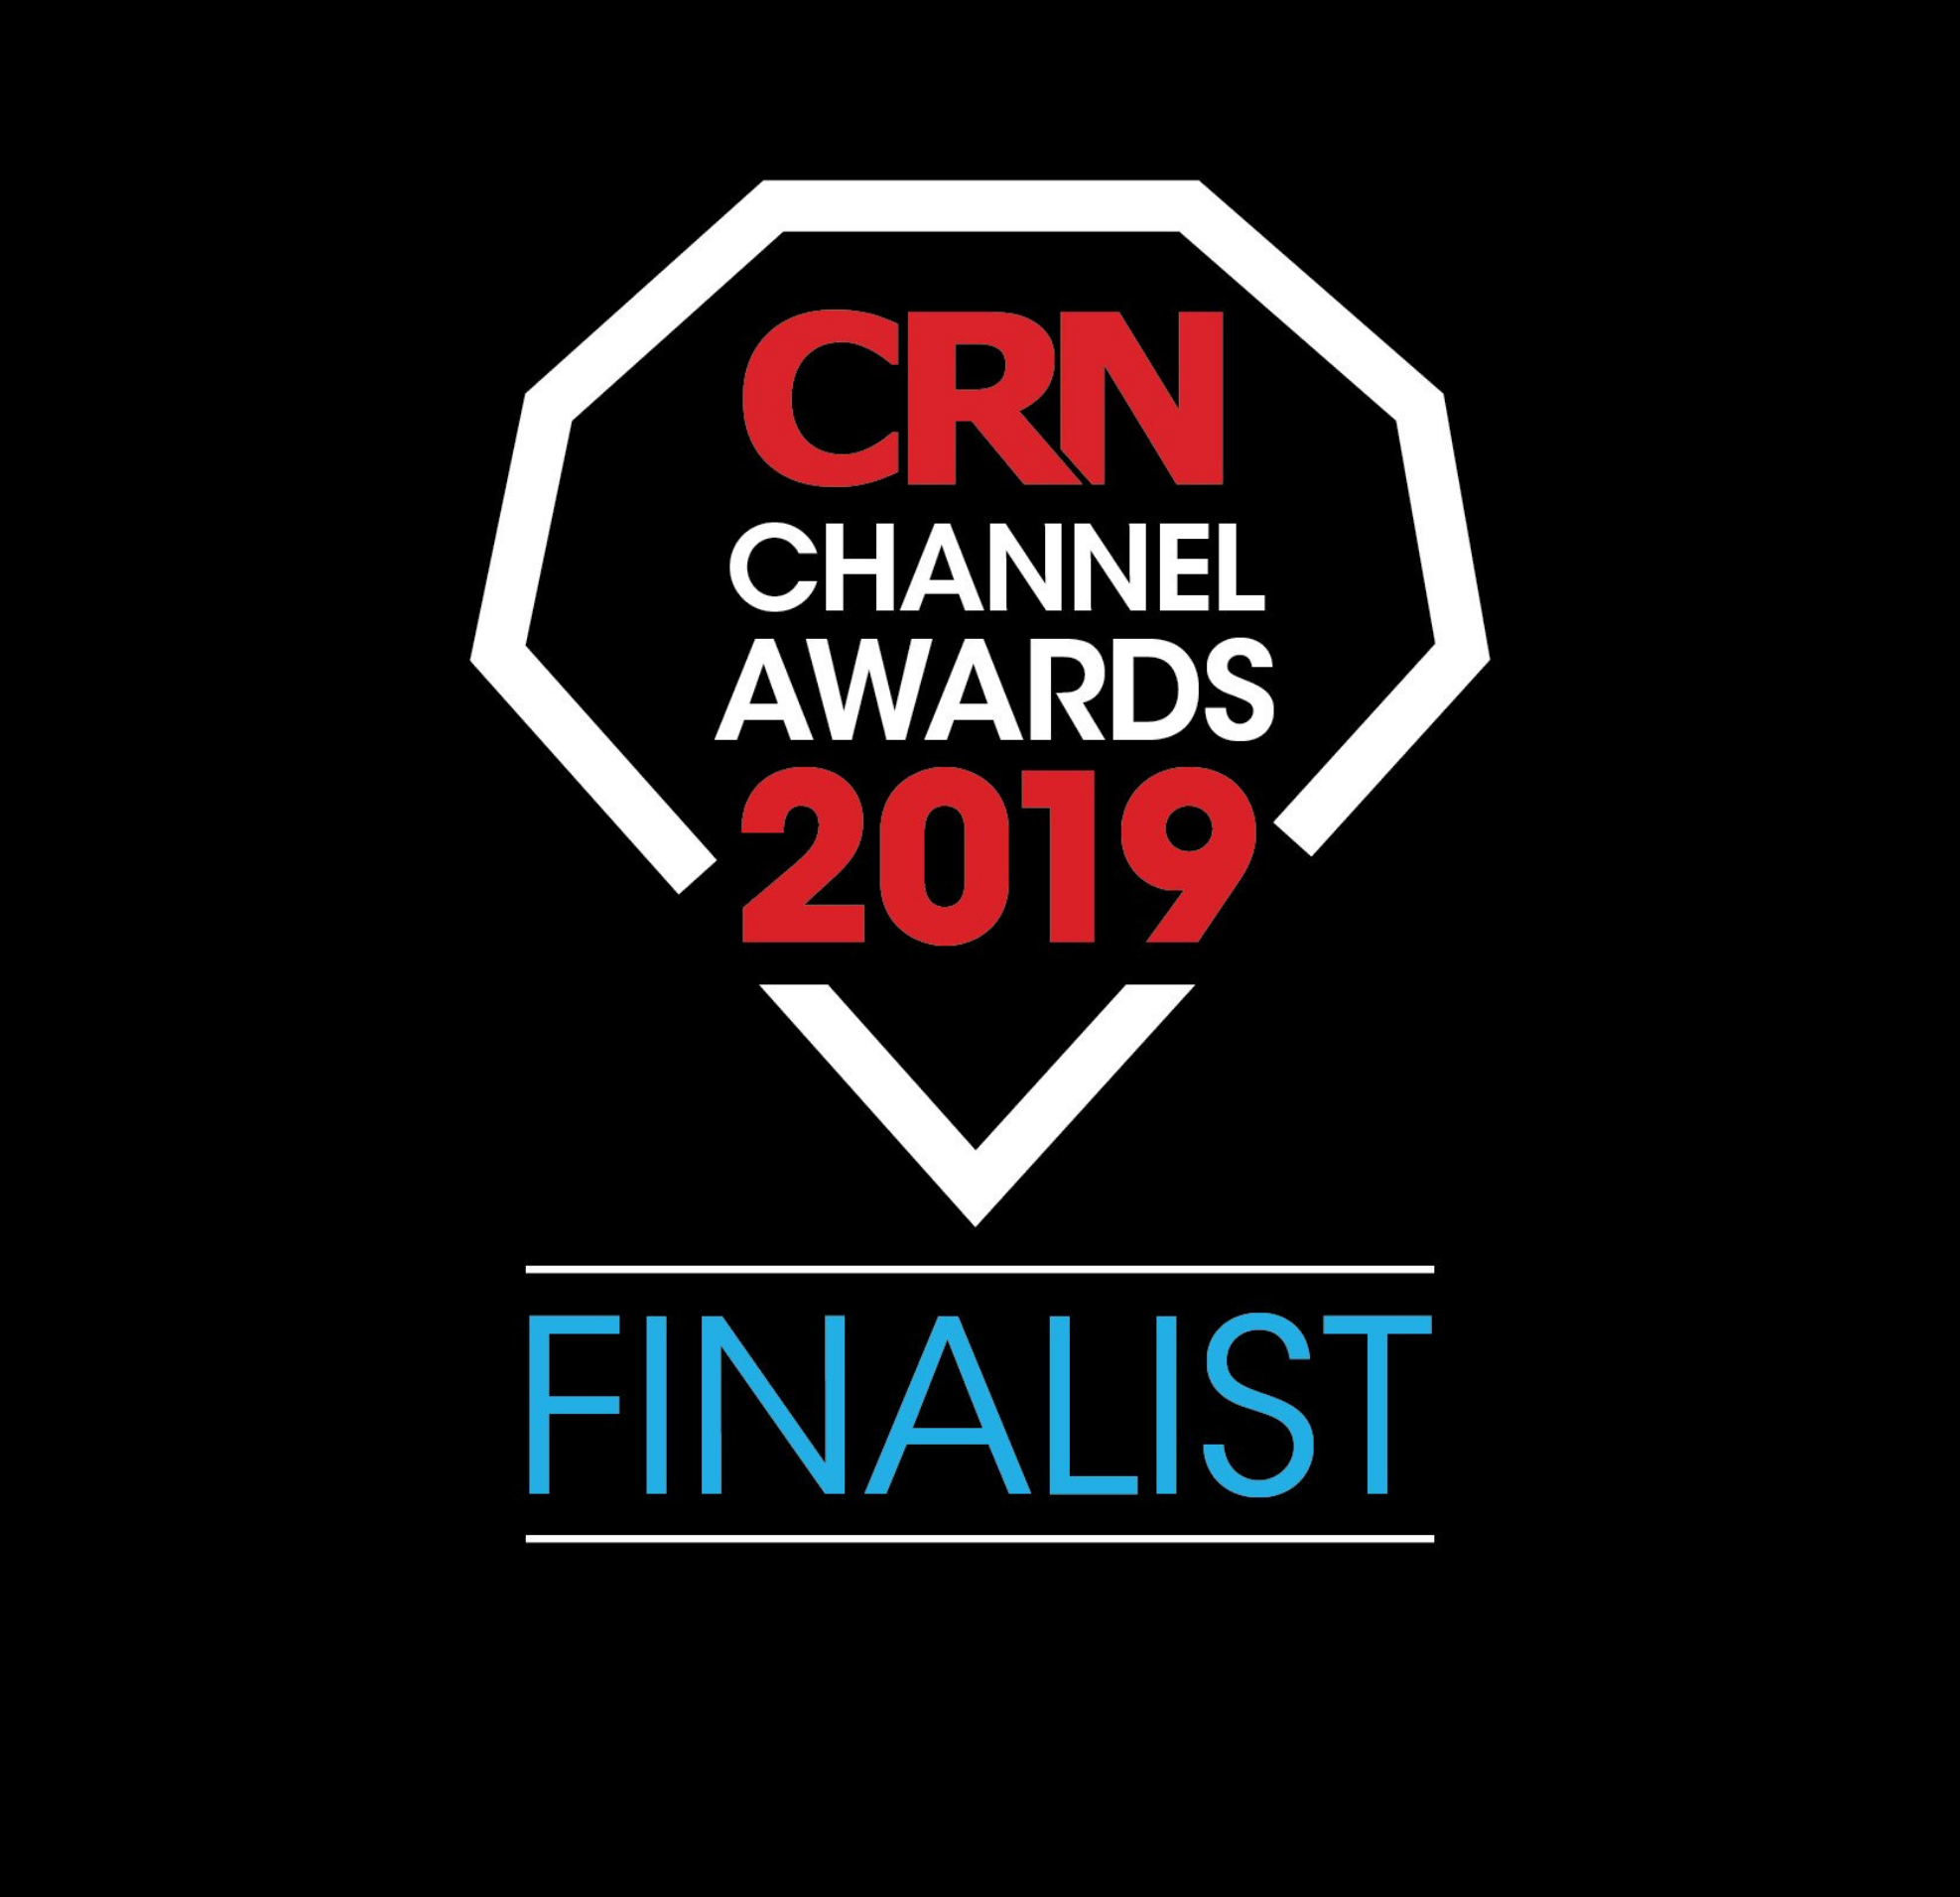 CRN Channel Awards Finalist